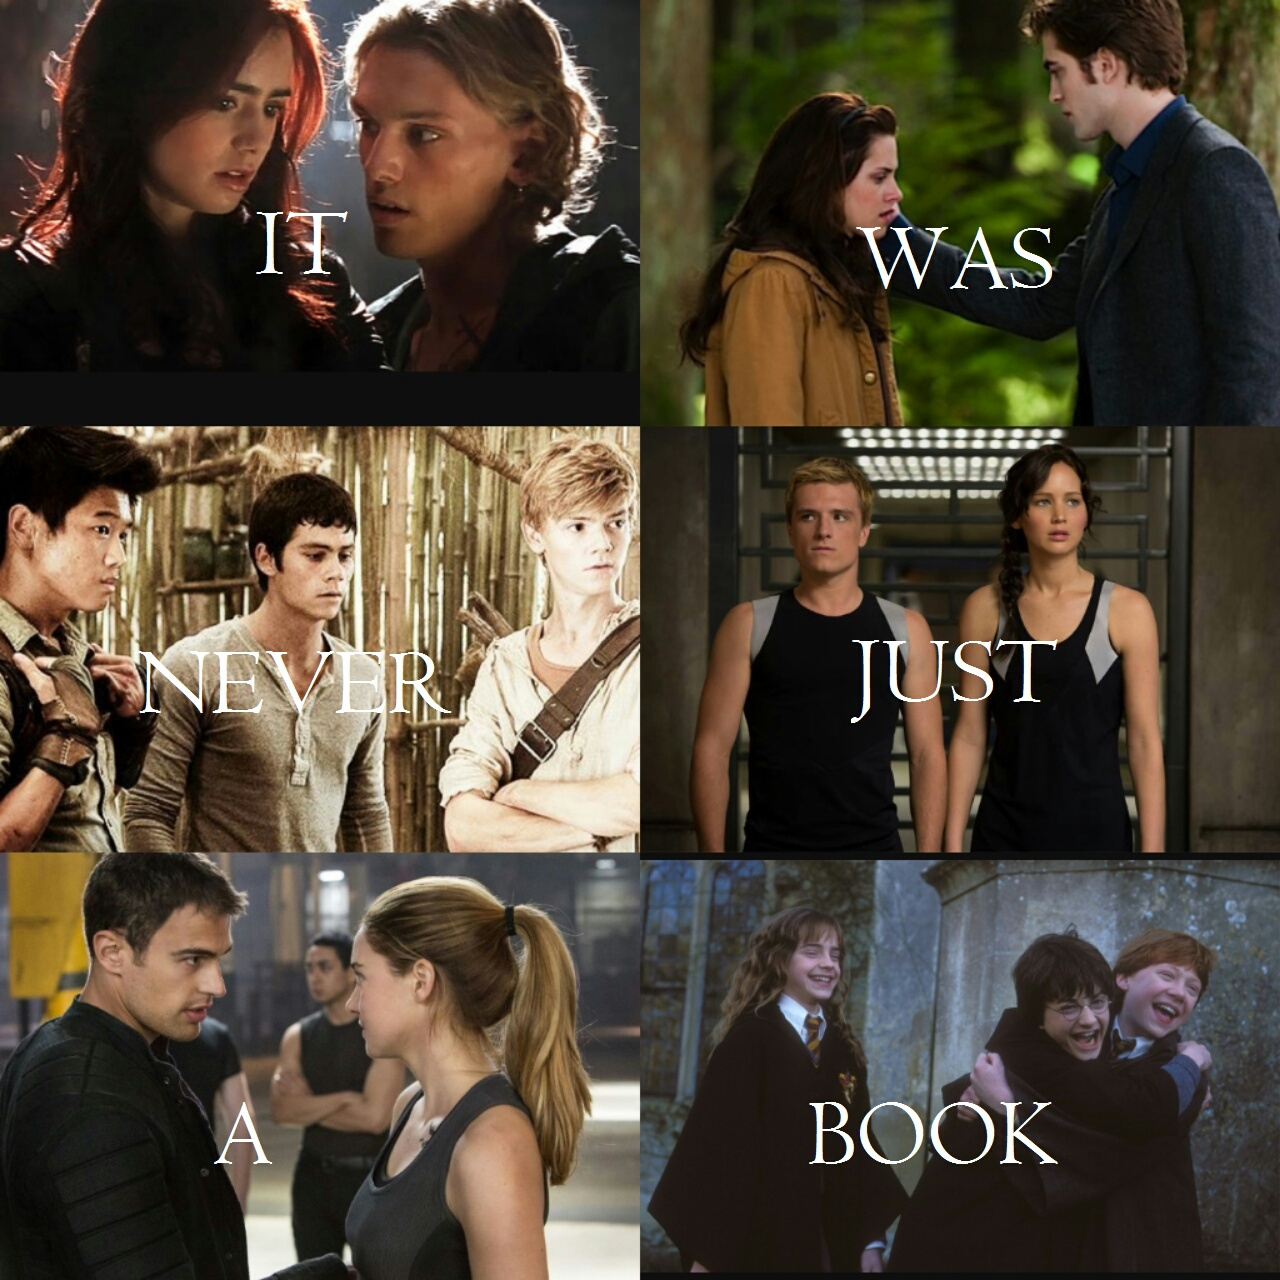 bella swan, brave, city of bones, clary fray, divergent